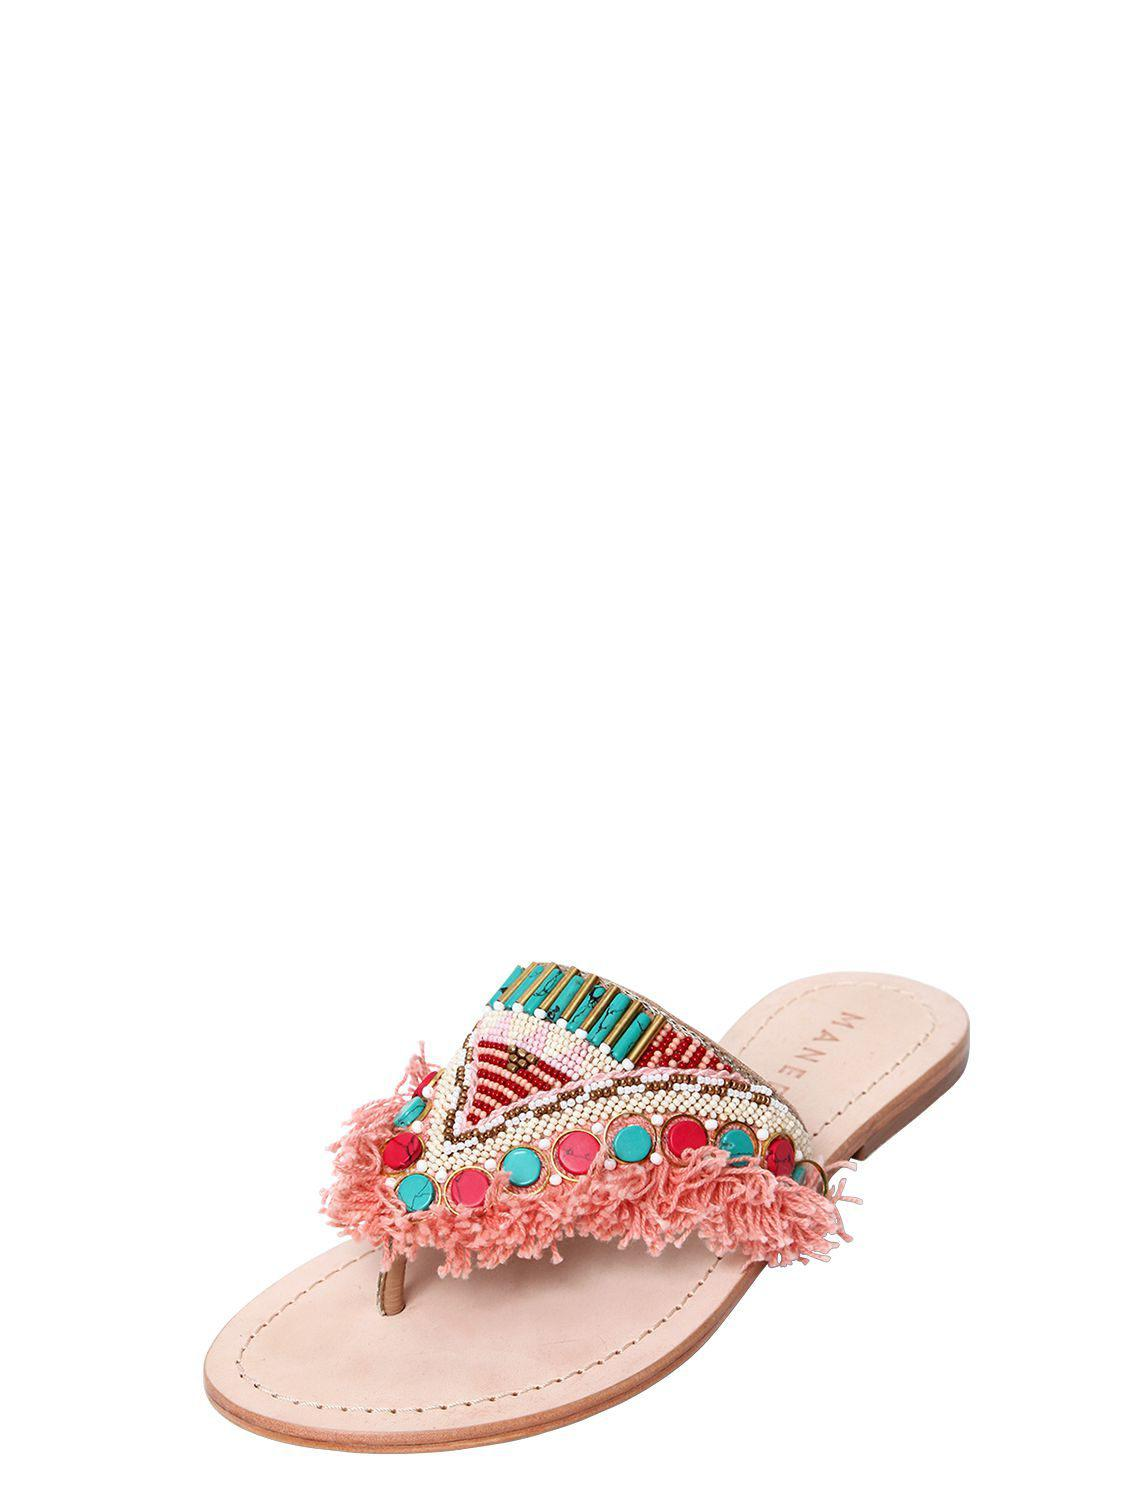 MANEBI 10MM FRINGED EMBELLISHED LEATHER SANDALS Outlet 2018 Newest Best Store To Get Hard Wearing A9IR6ifE